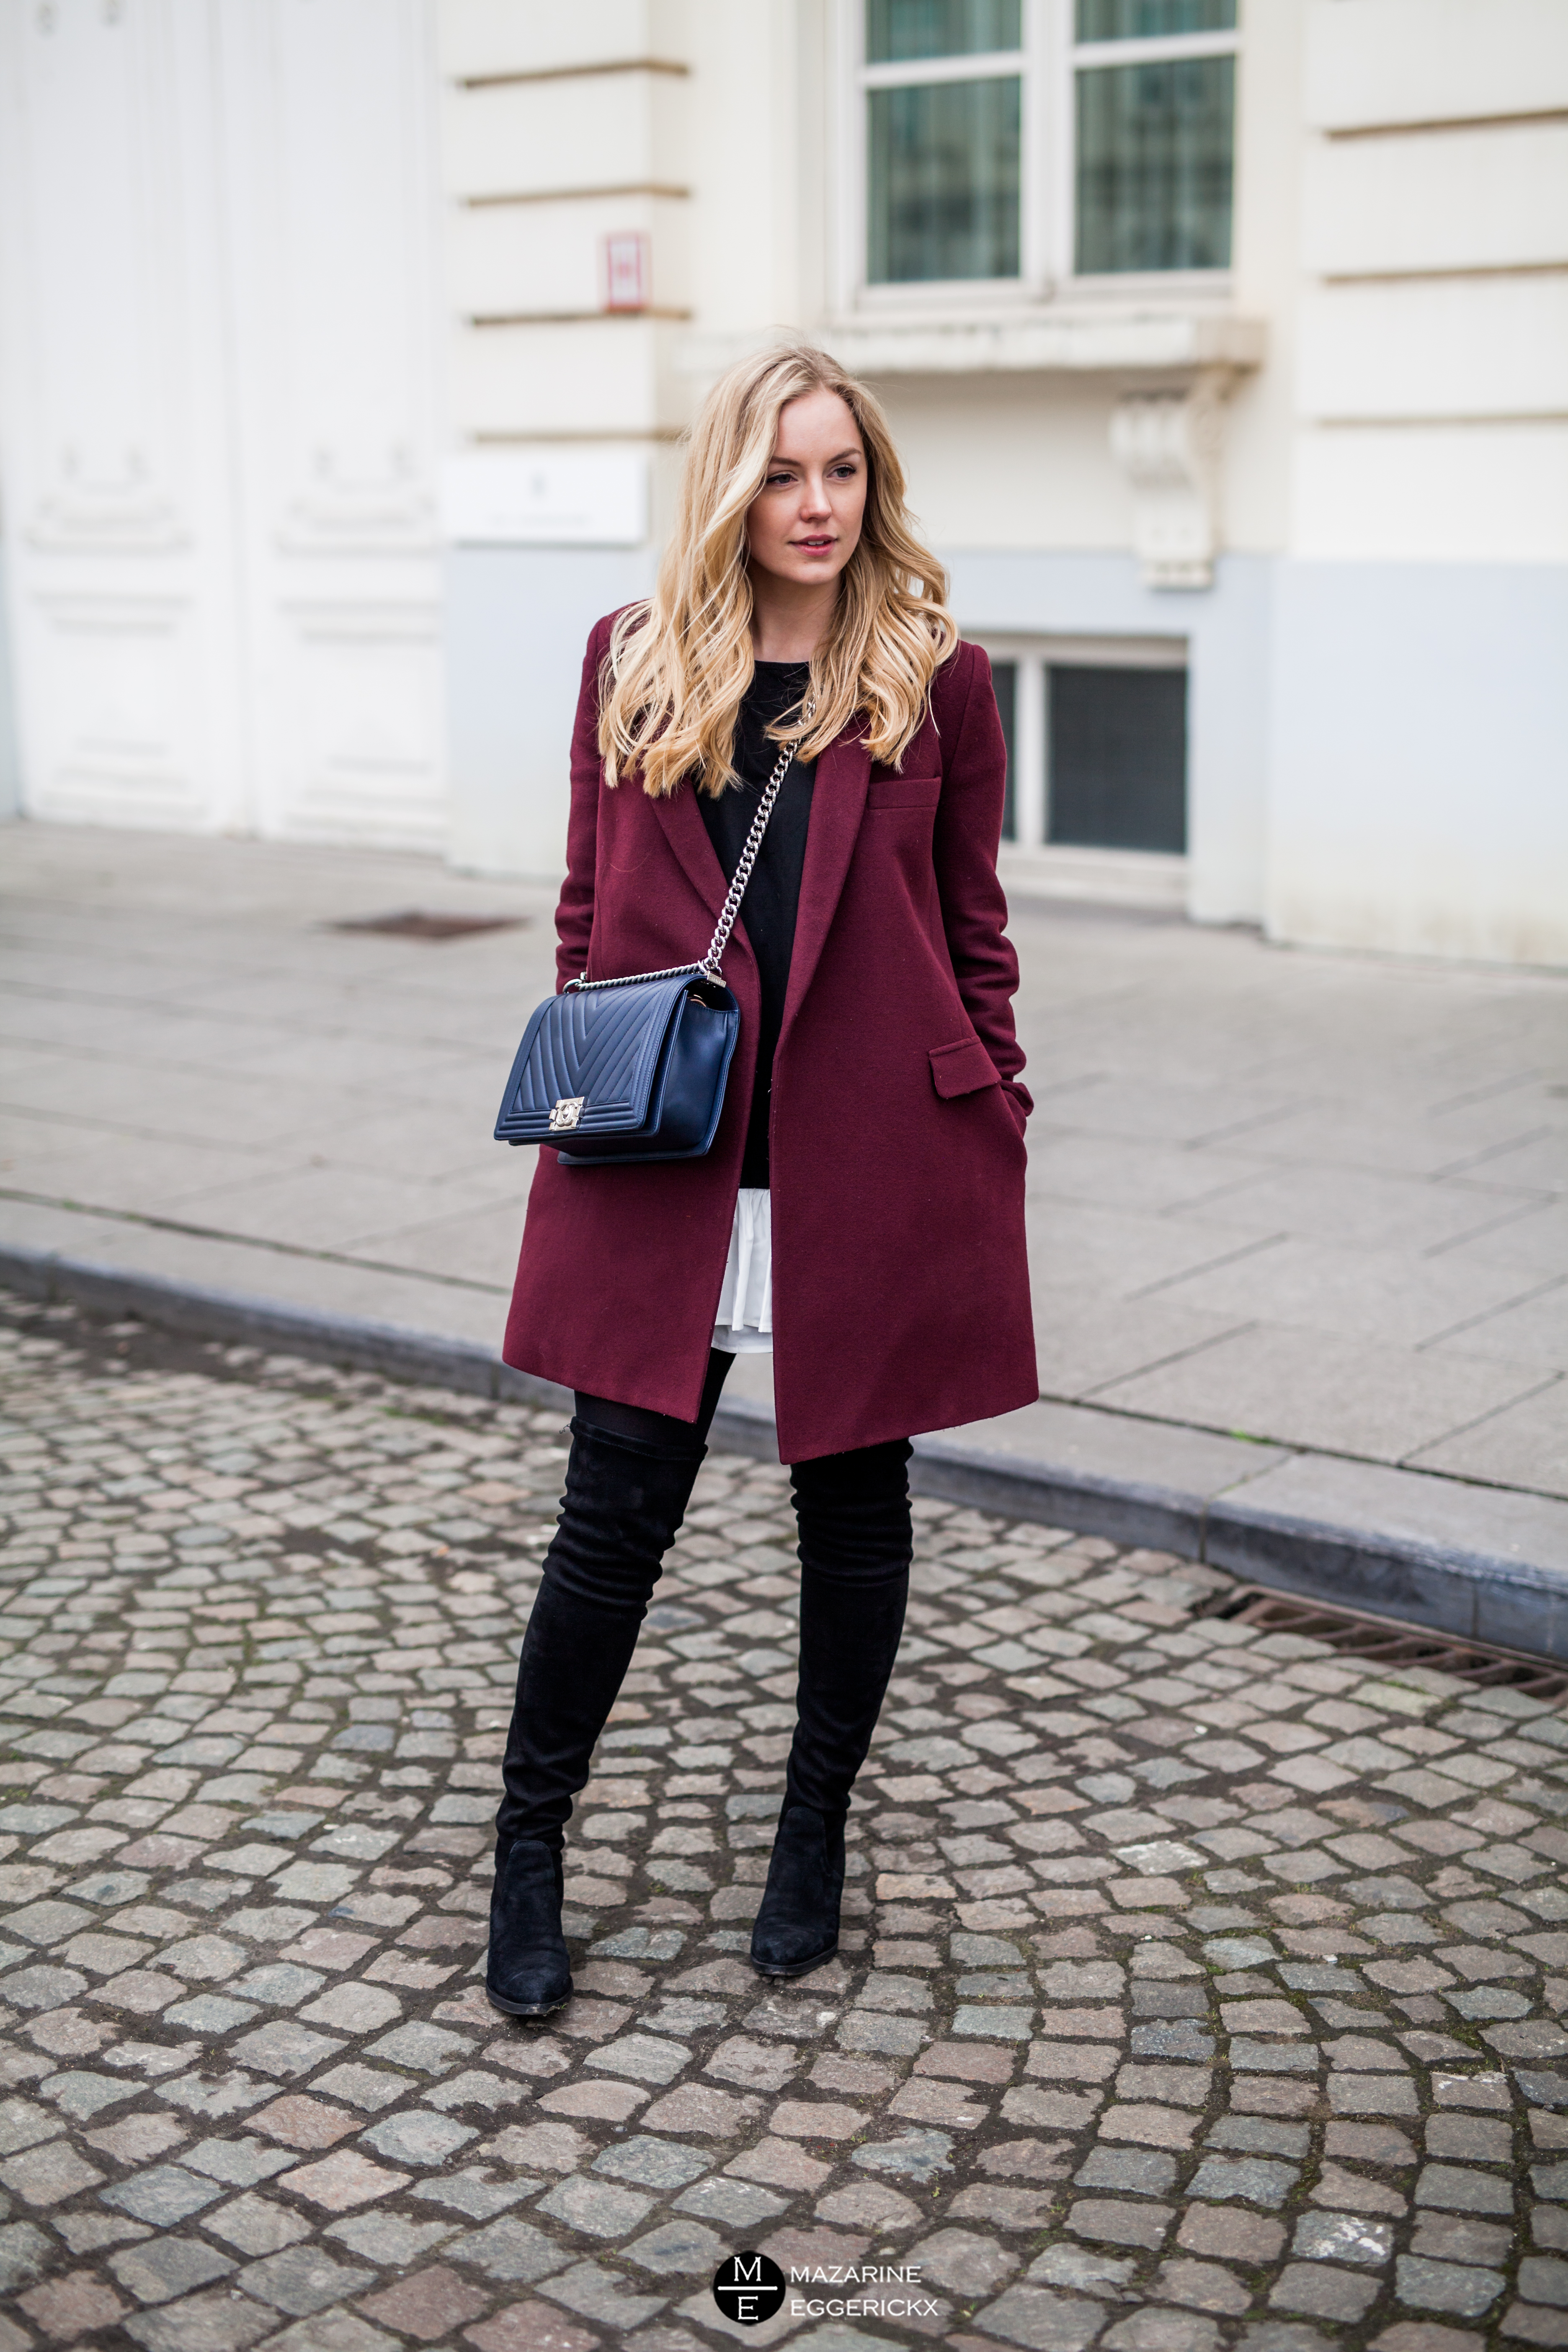 how to wear thigh high boots while being chic